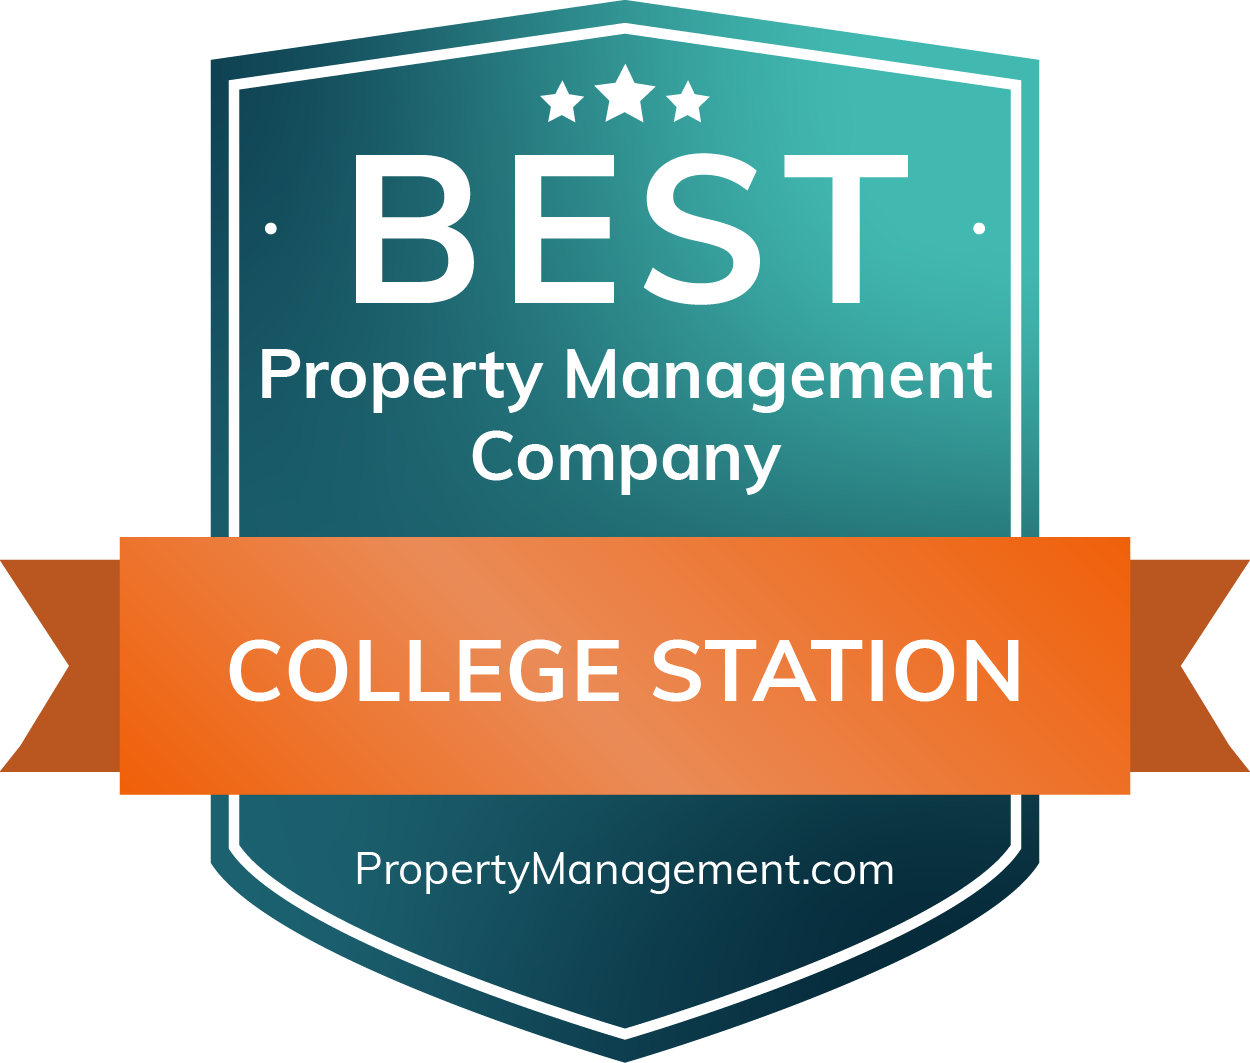 The Best Property Management in College Station, TX